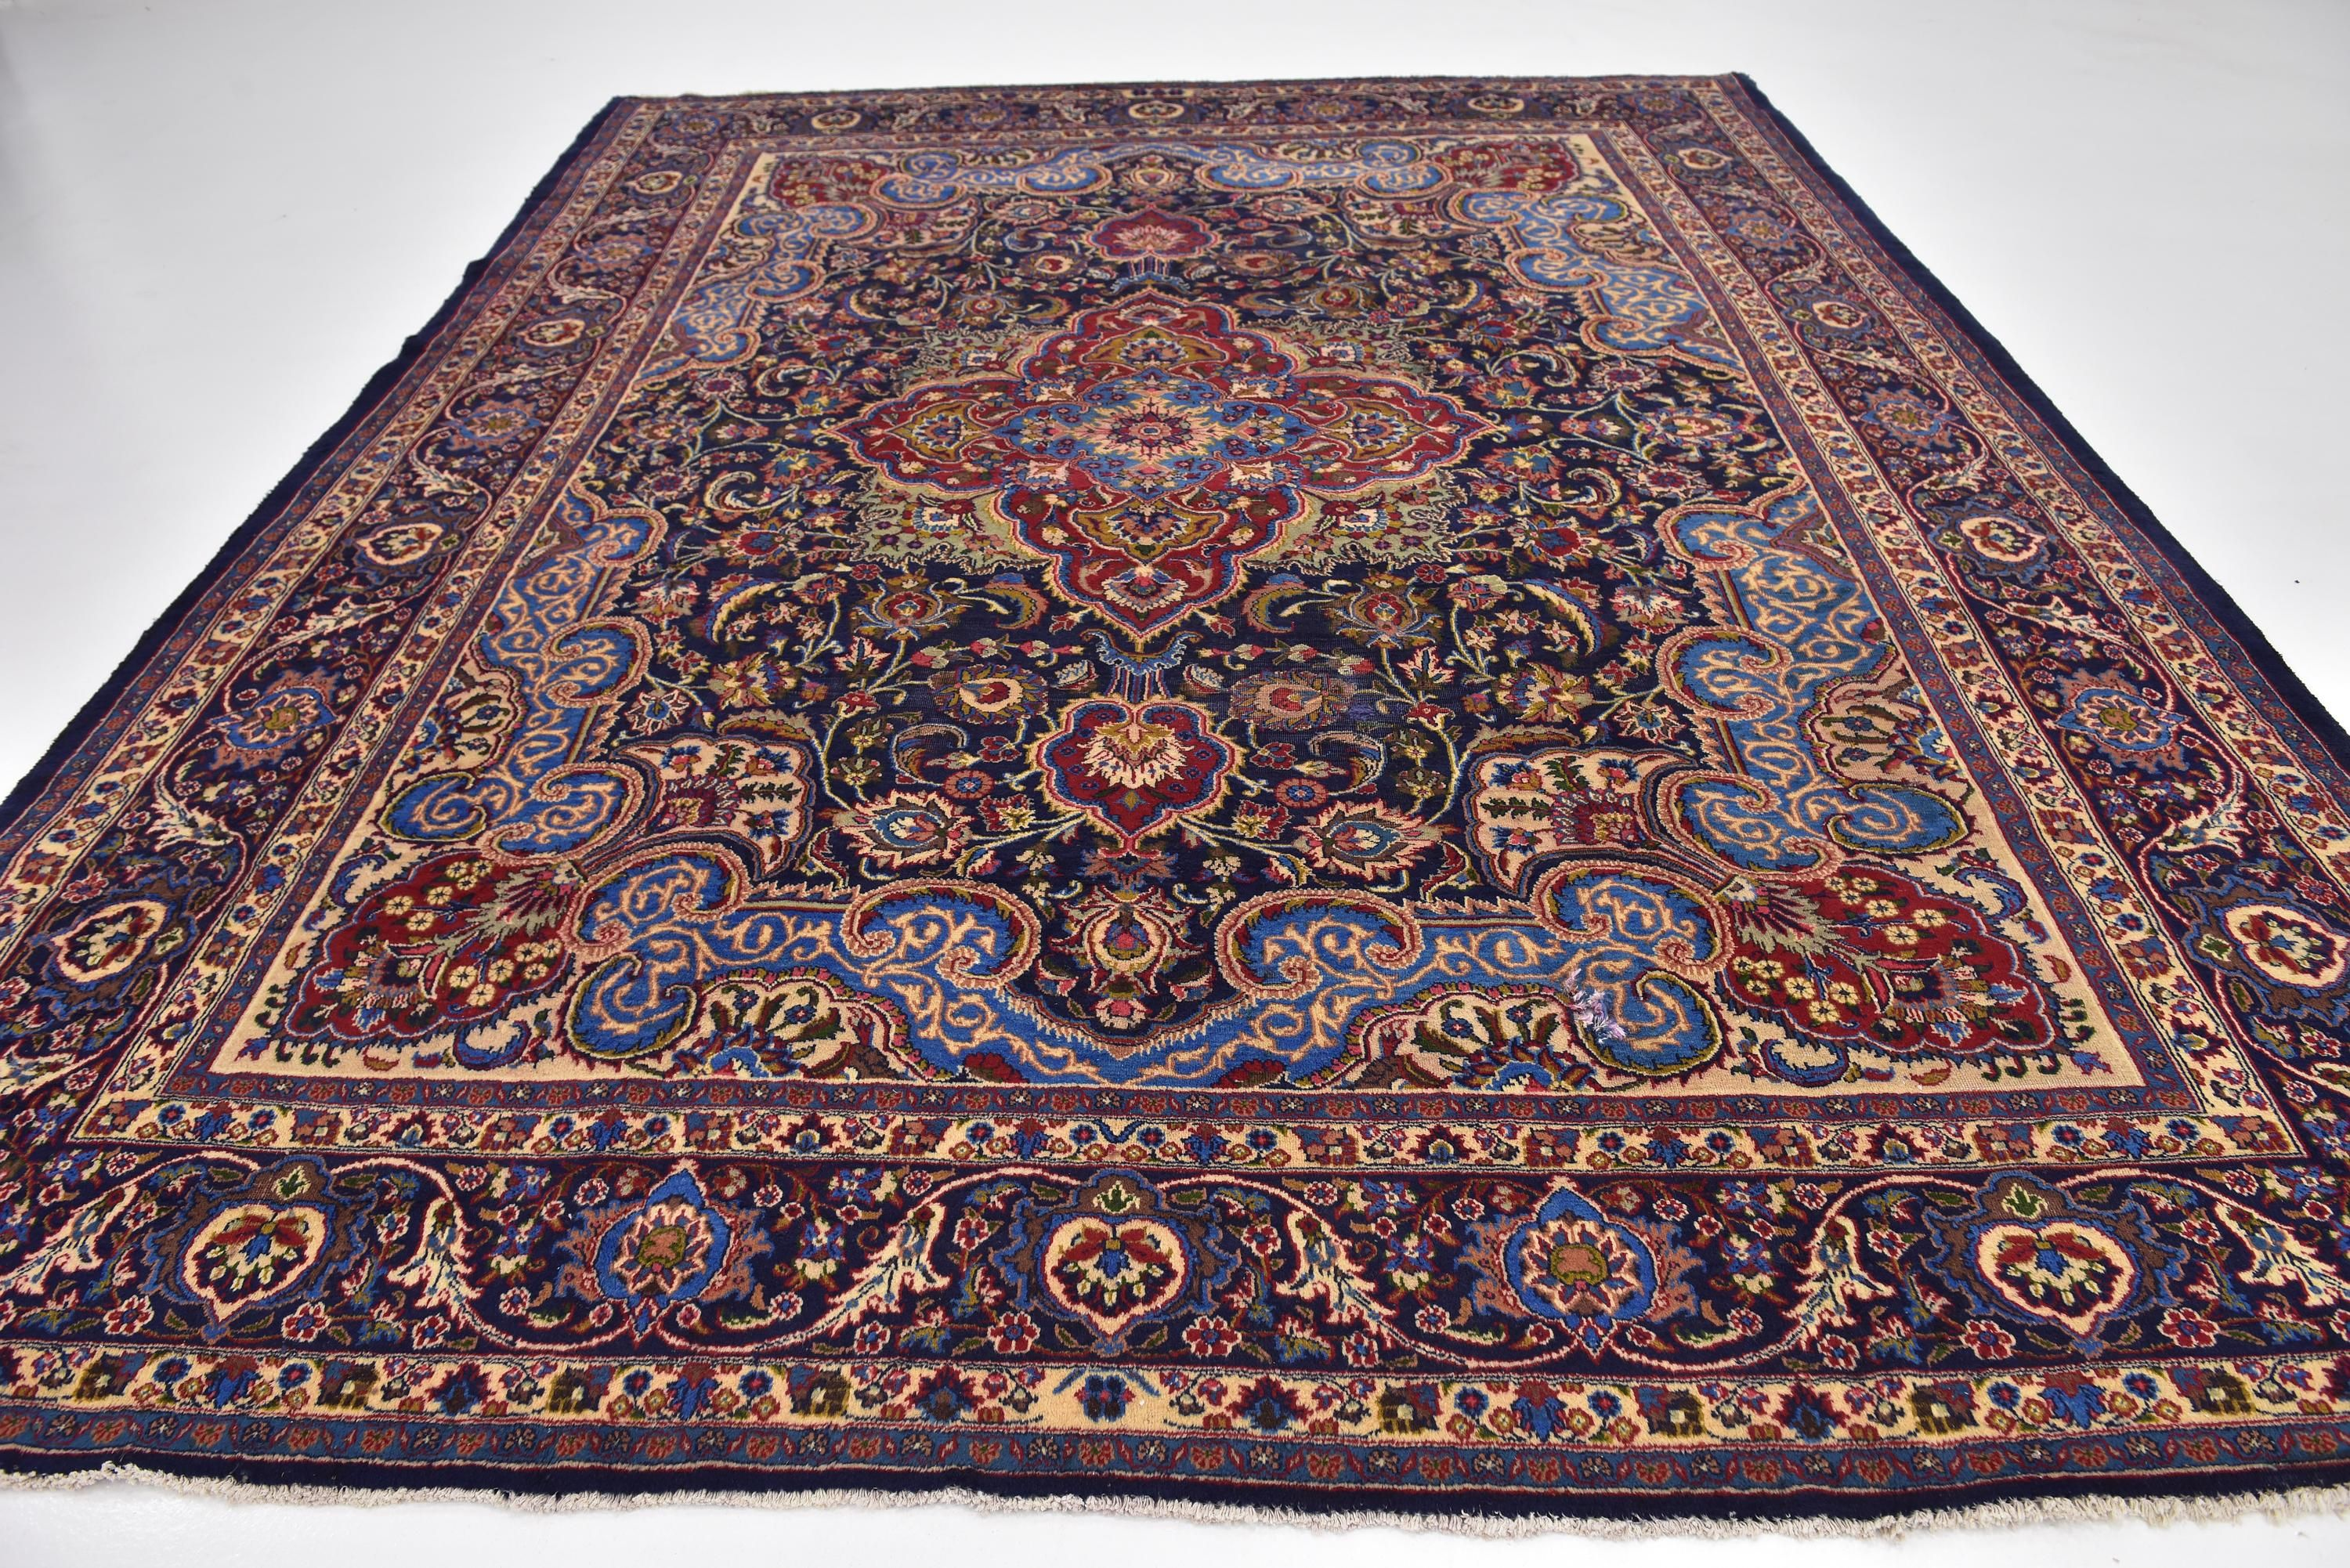 Navy Blue 9 8 X 12 6 Mashad Persian Rug Persian Rugs Esalerugs Persian Rug Colorful Rugs Rugs